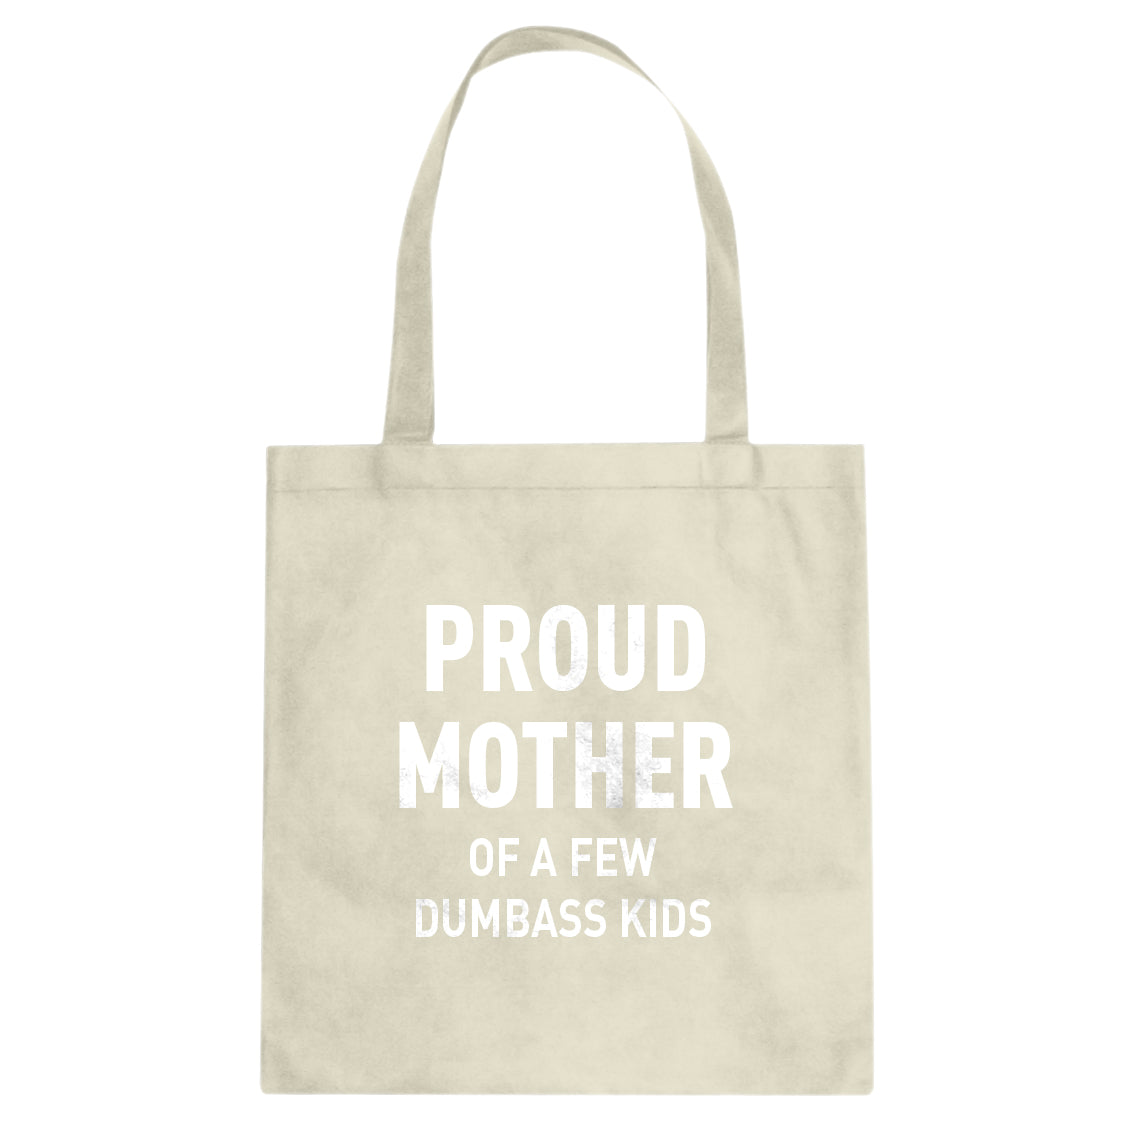 Indica Plateau Proud Mother of Dumbass Kids Cotton Canvas Tote Bag